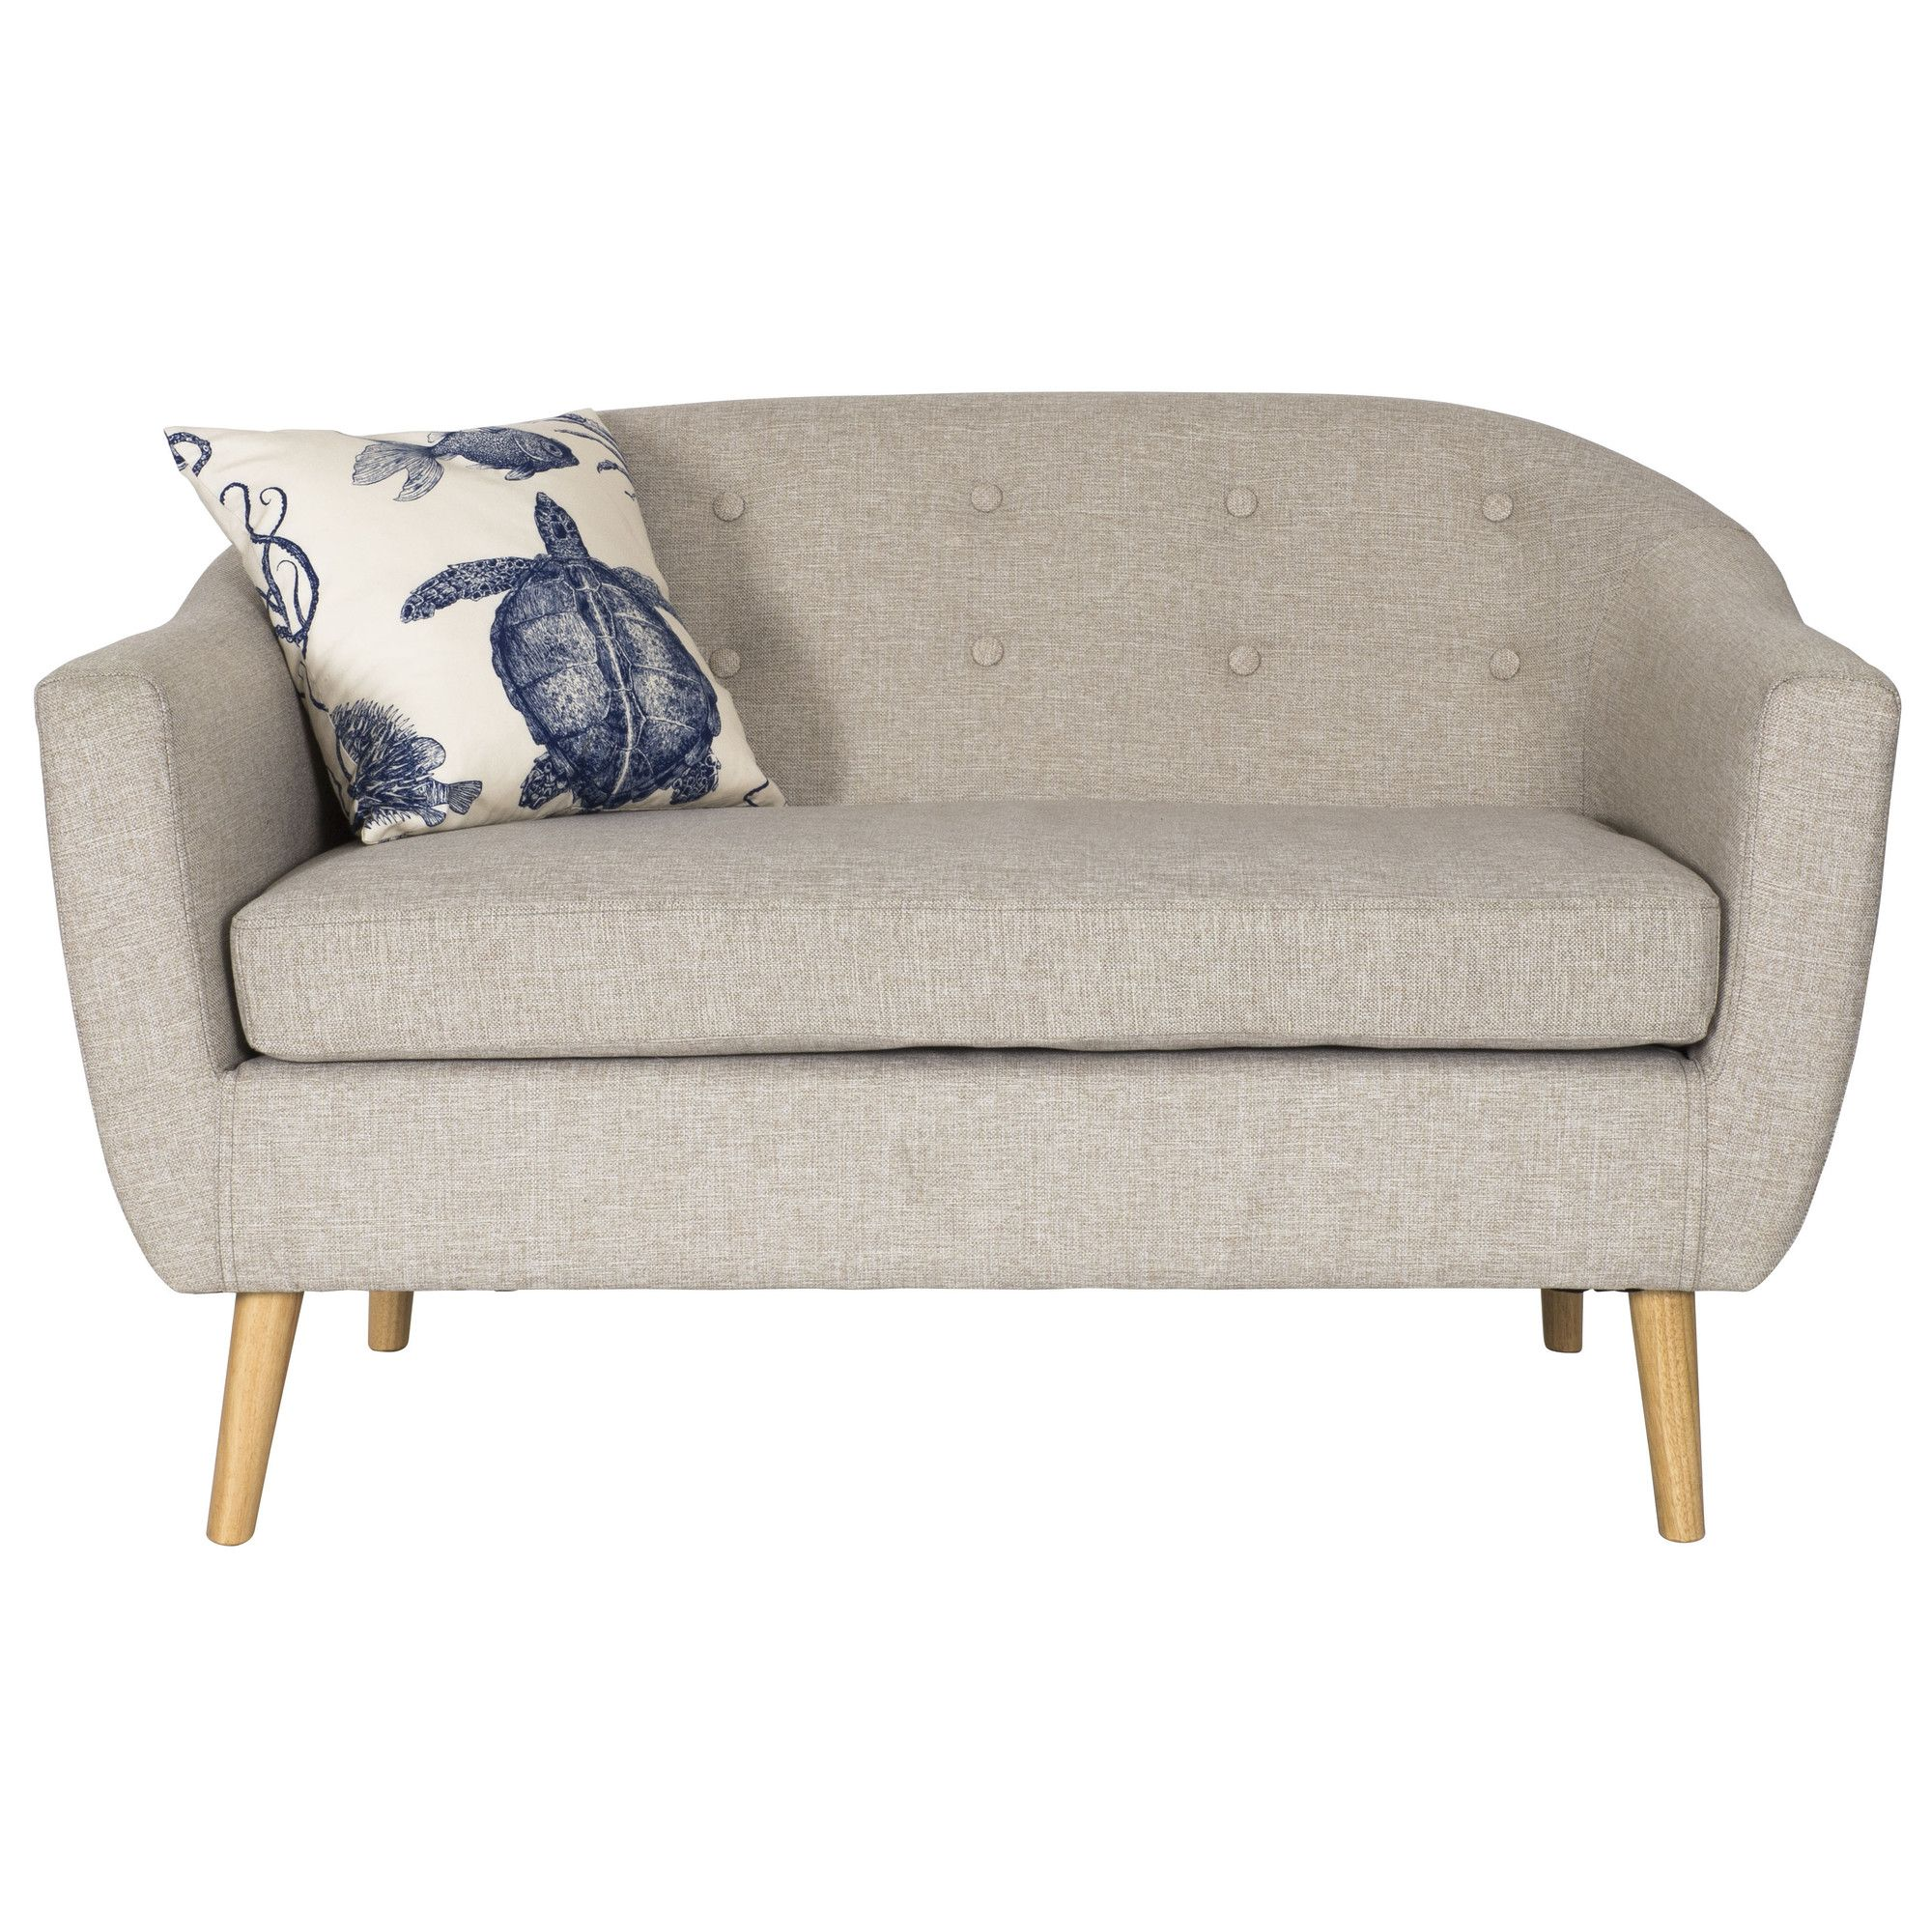 Value By Wayfair Larch 2 Seater Sofa Love Seat Sofa Makeover 2 Seater Sofa